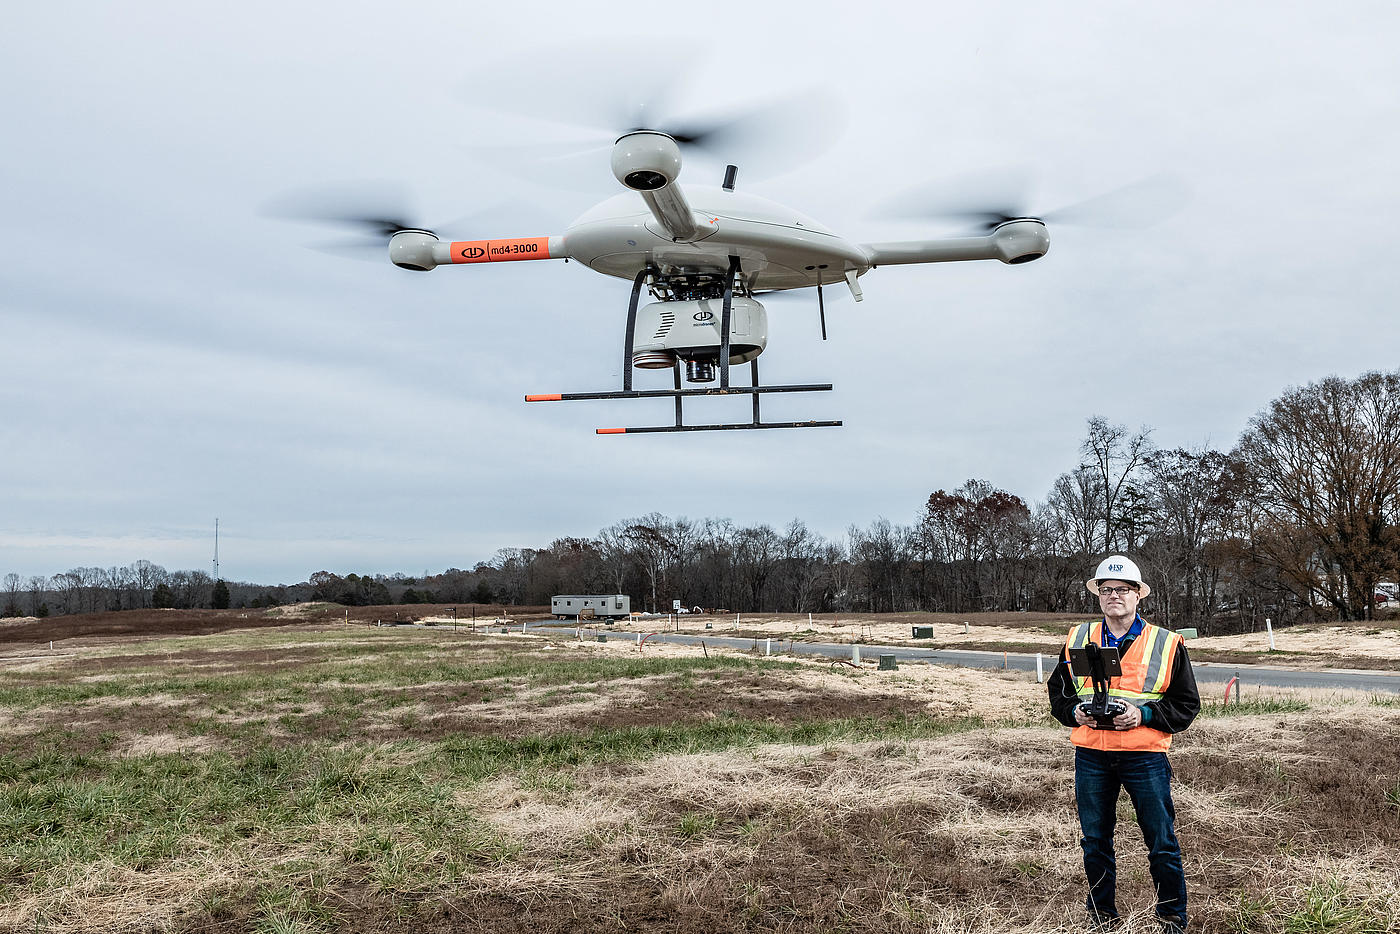 WEDNESDAY WEBINAR REPLAY: SHOULD I INVEST IN DRONE-BASED LIDAR?